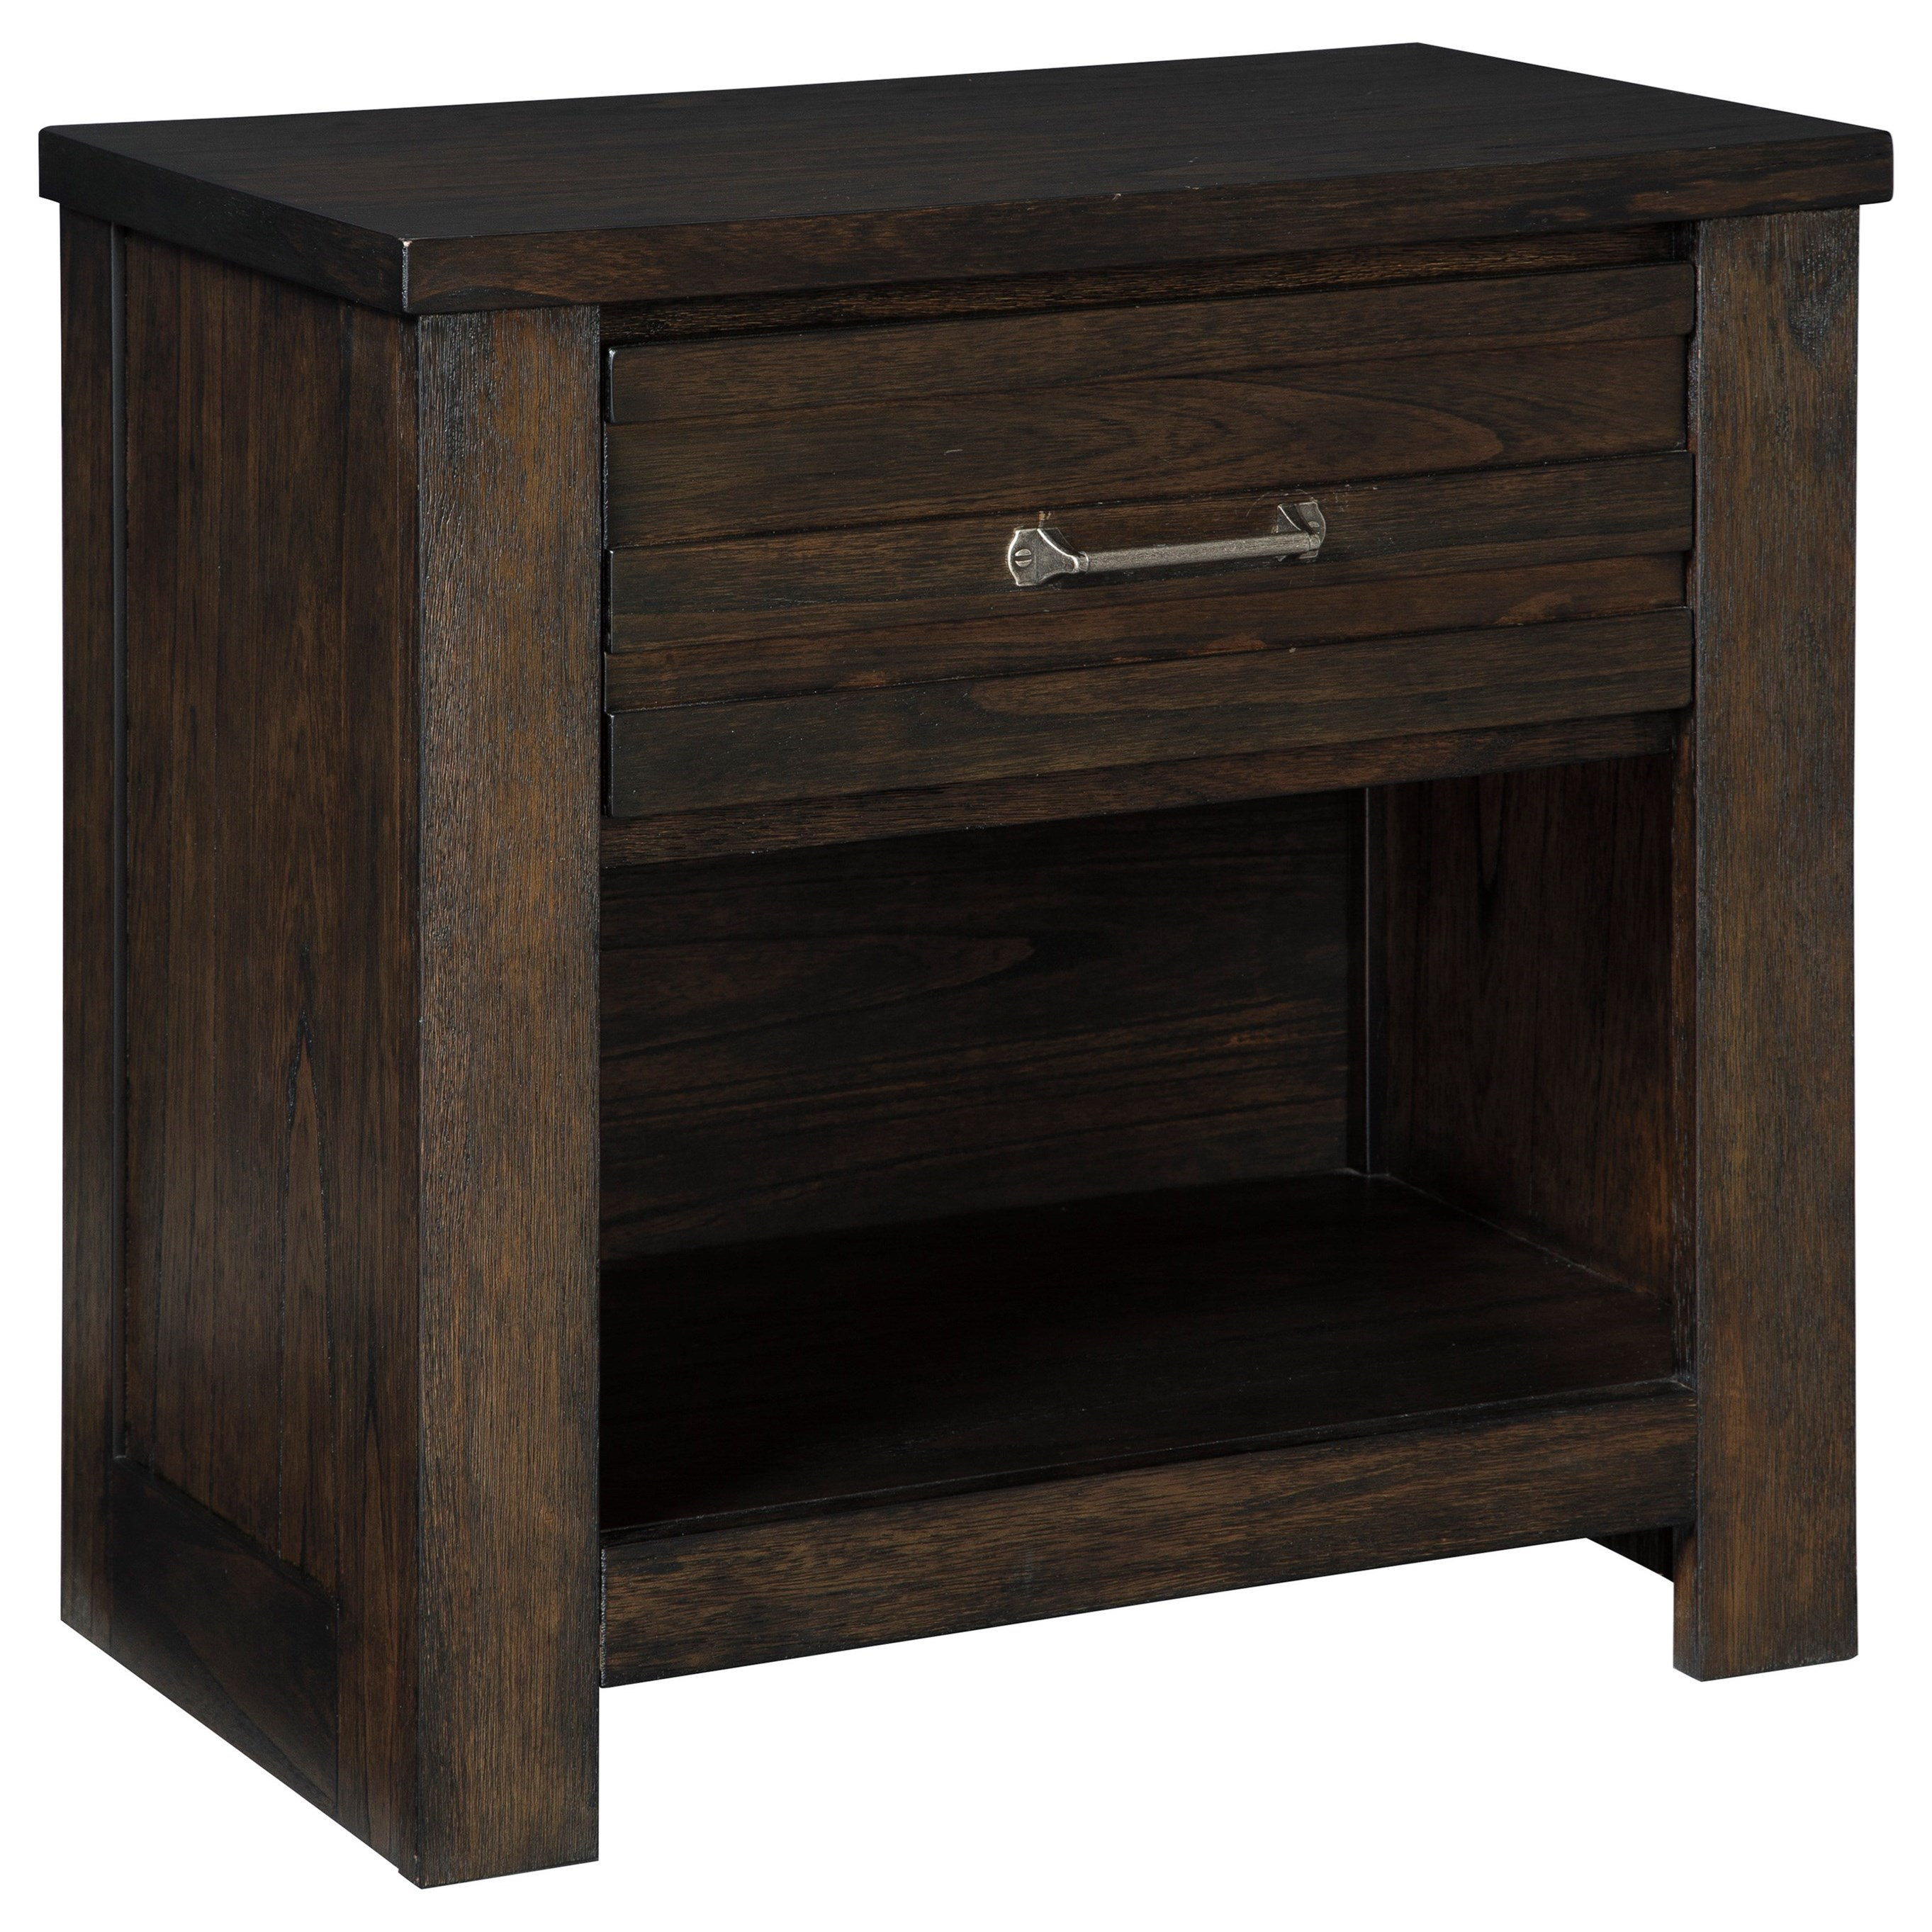 Contemporary One Drawer Night Stand with Shelf